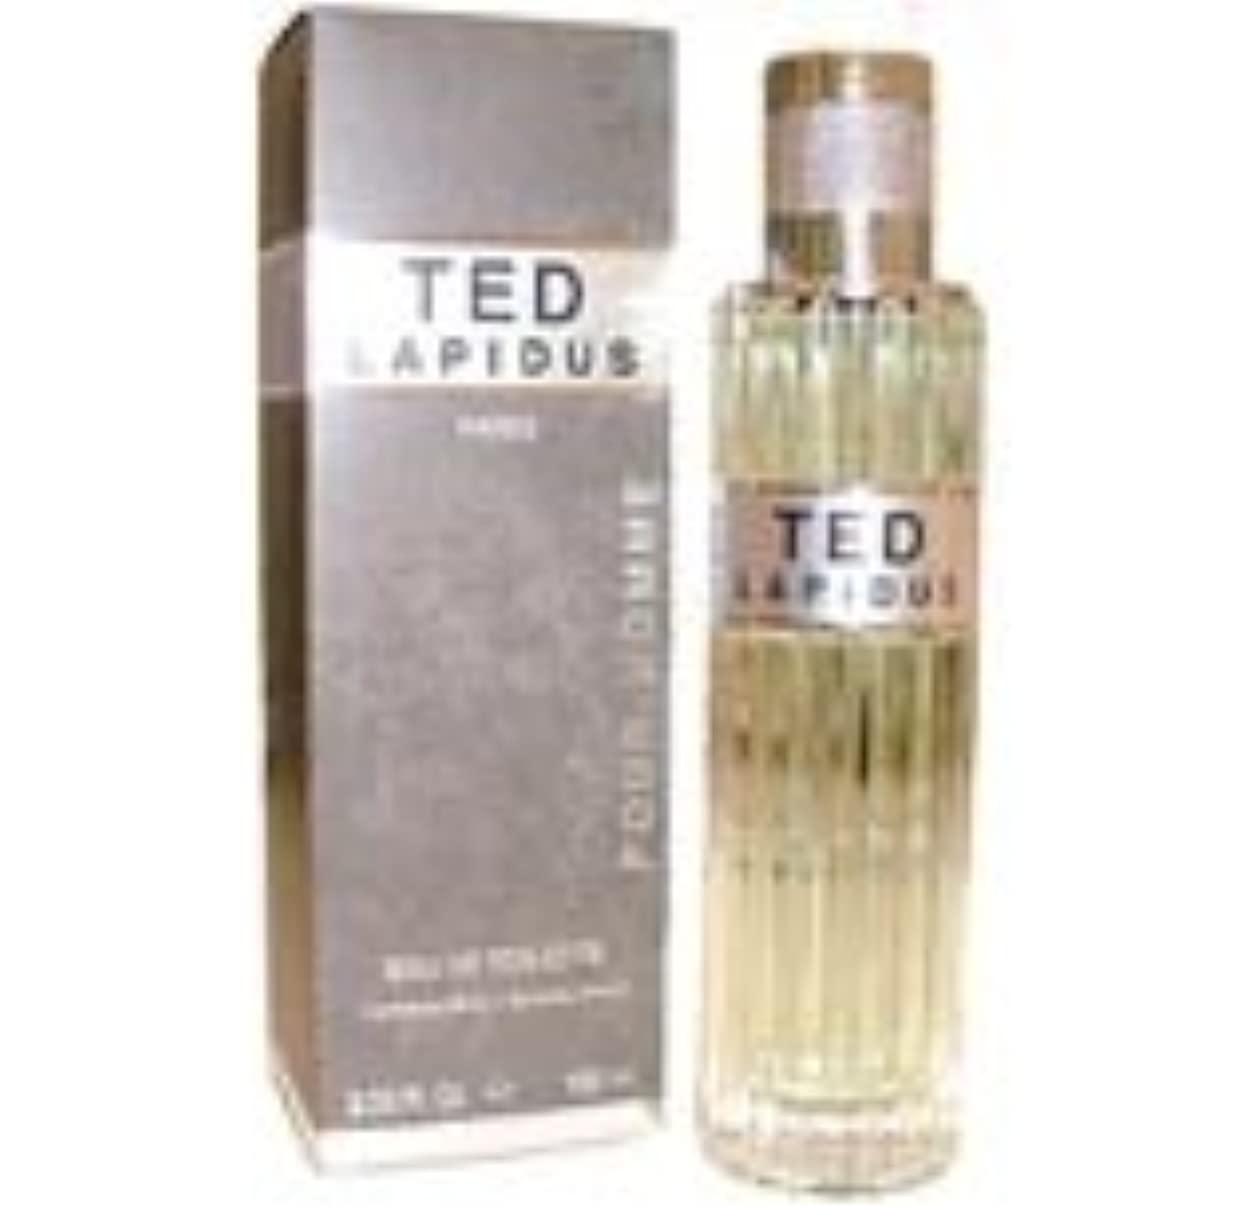 援助するコスト歩くTed (テッド) 1.7 oz (50ml) EDT Spray by Ted Rapidus for Men